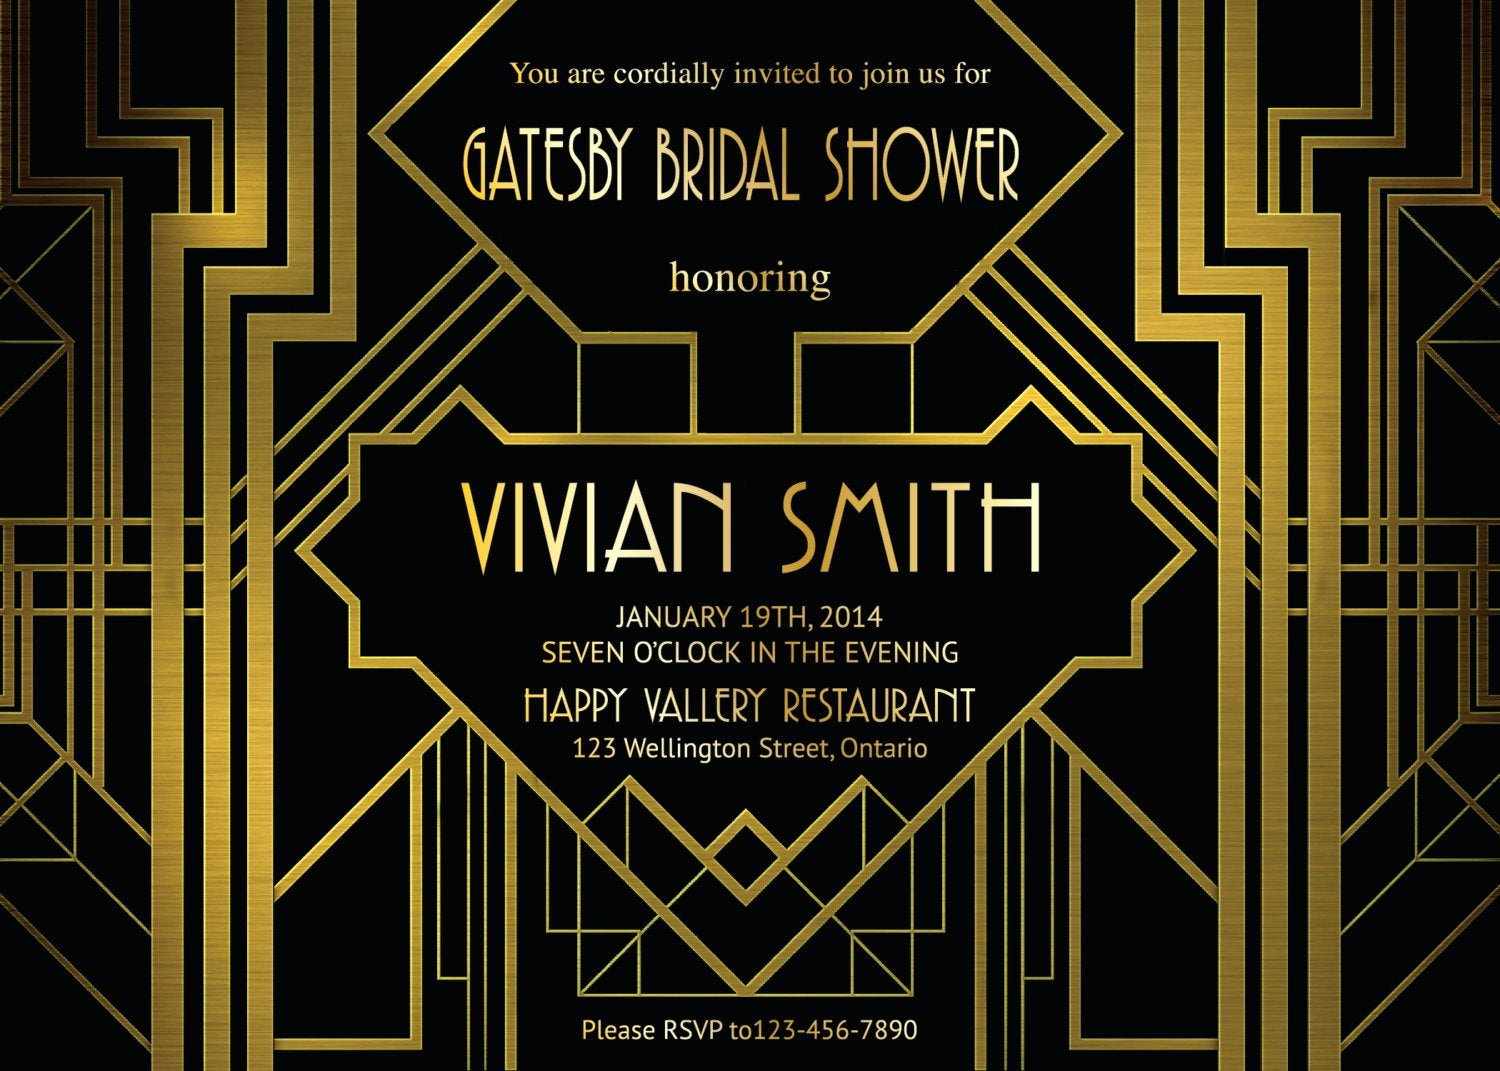 Great Gatsby Party Invitation Template Free Lovely Great Gatsby Bridal Shower Invitation Art Deco Customized